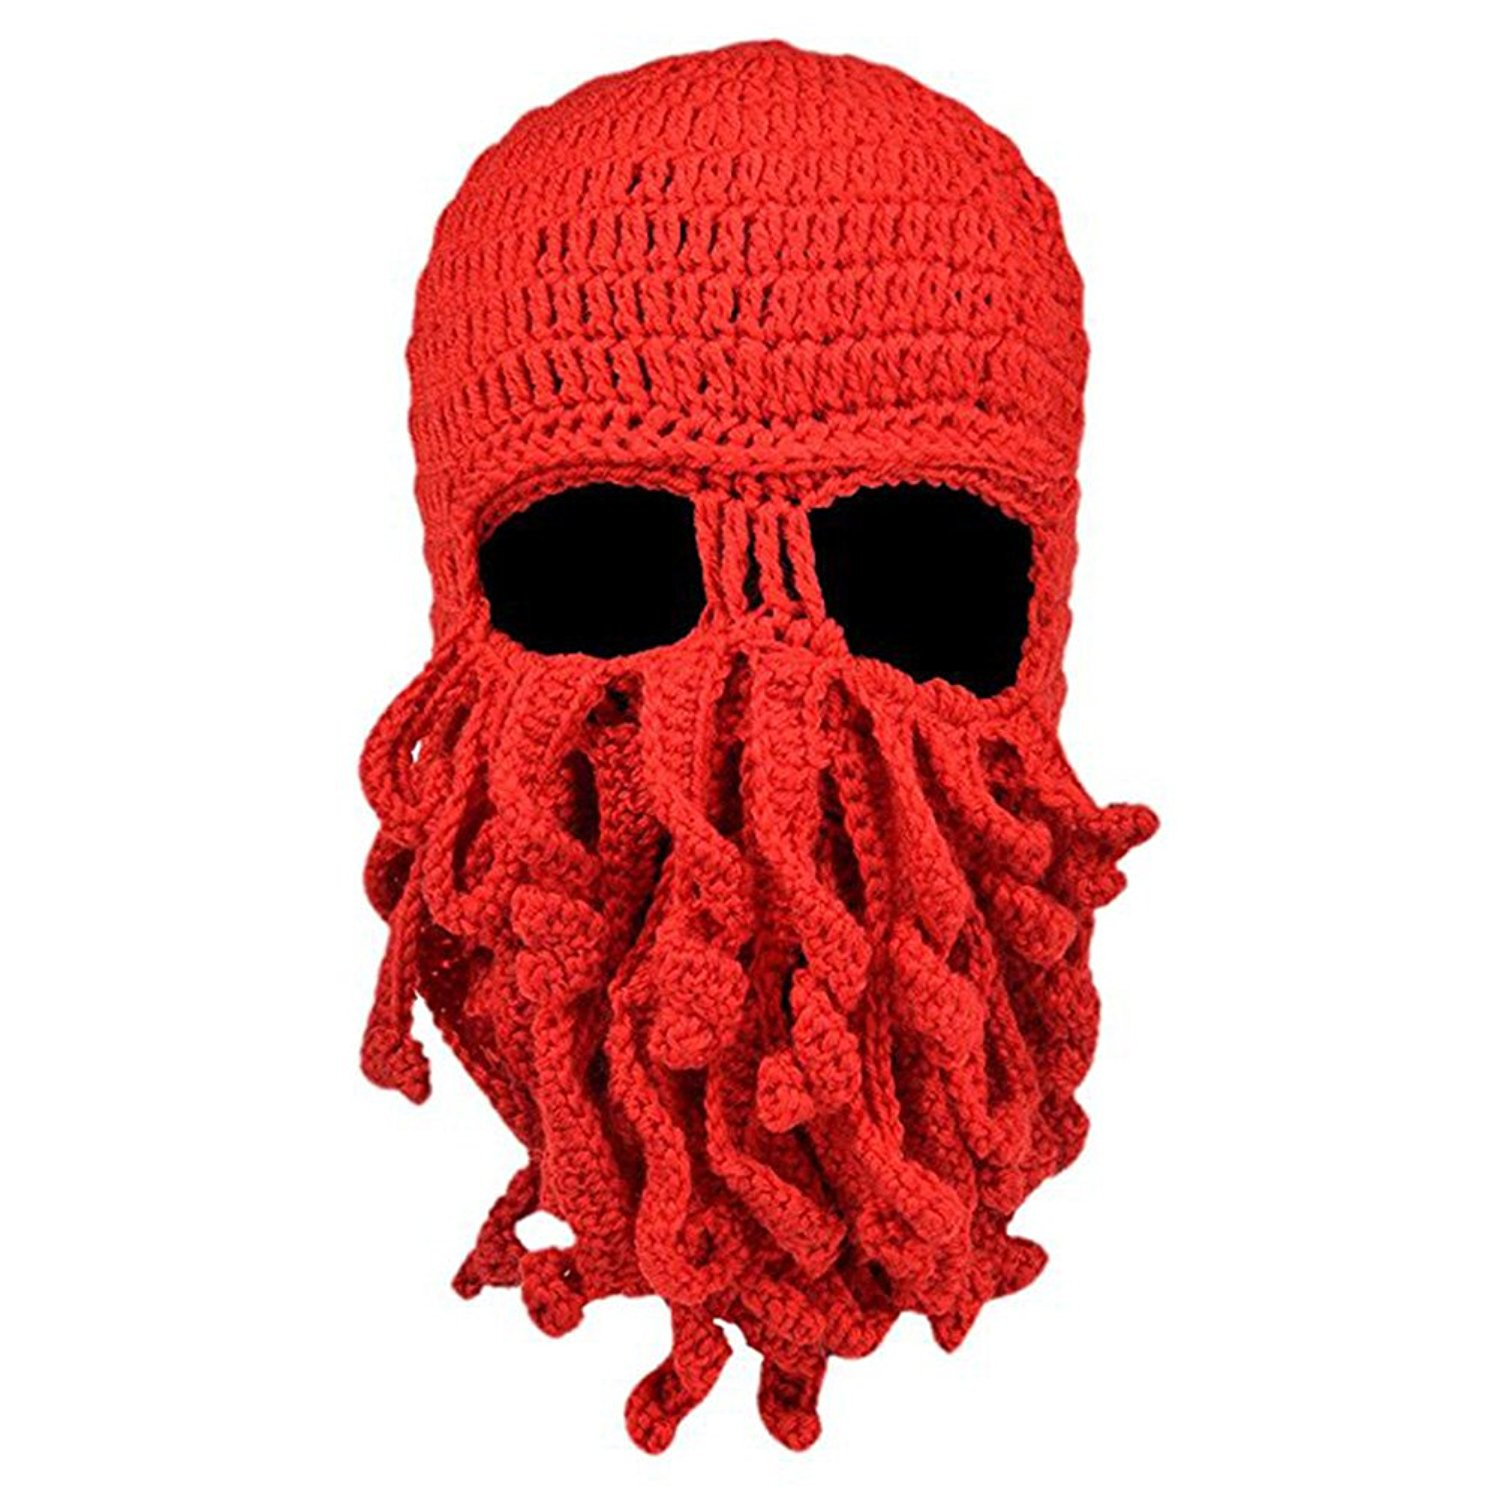 3ca42d36d92ec Get Quotations · Winter Warm Octopus Hat Windproof Beard hat Funny Knit Cap  Ski Mask for Men and Women